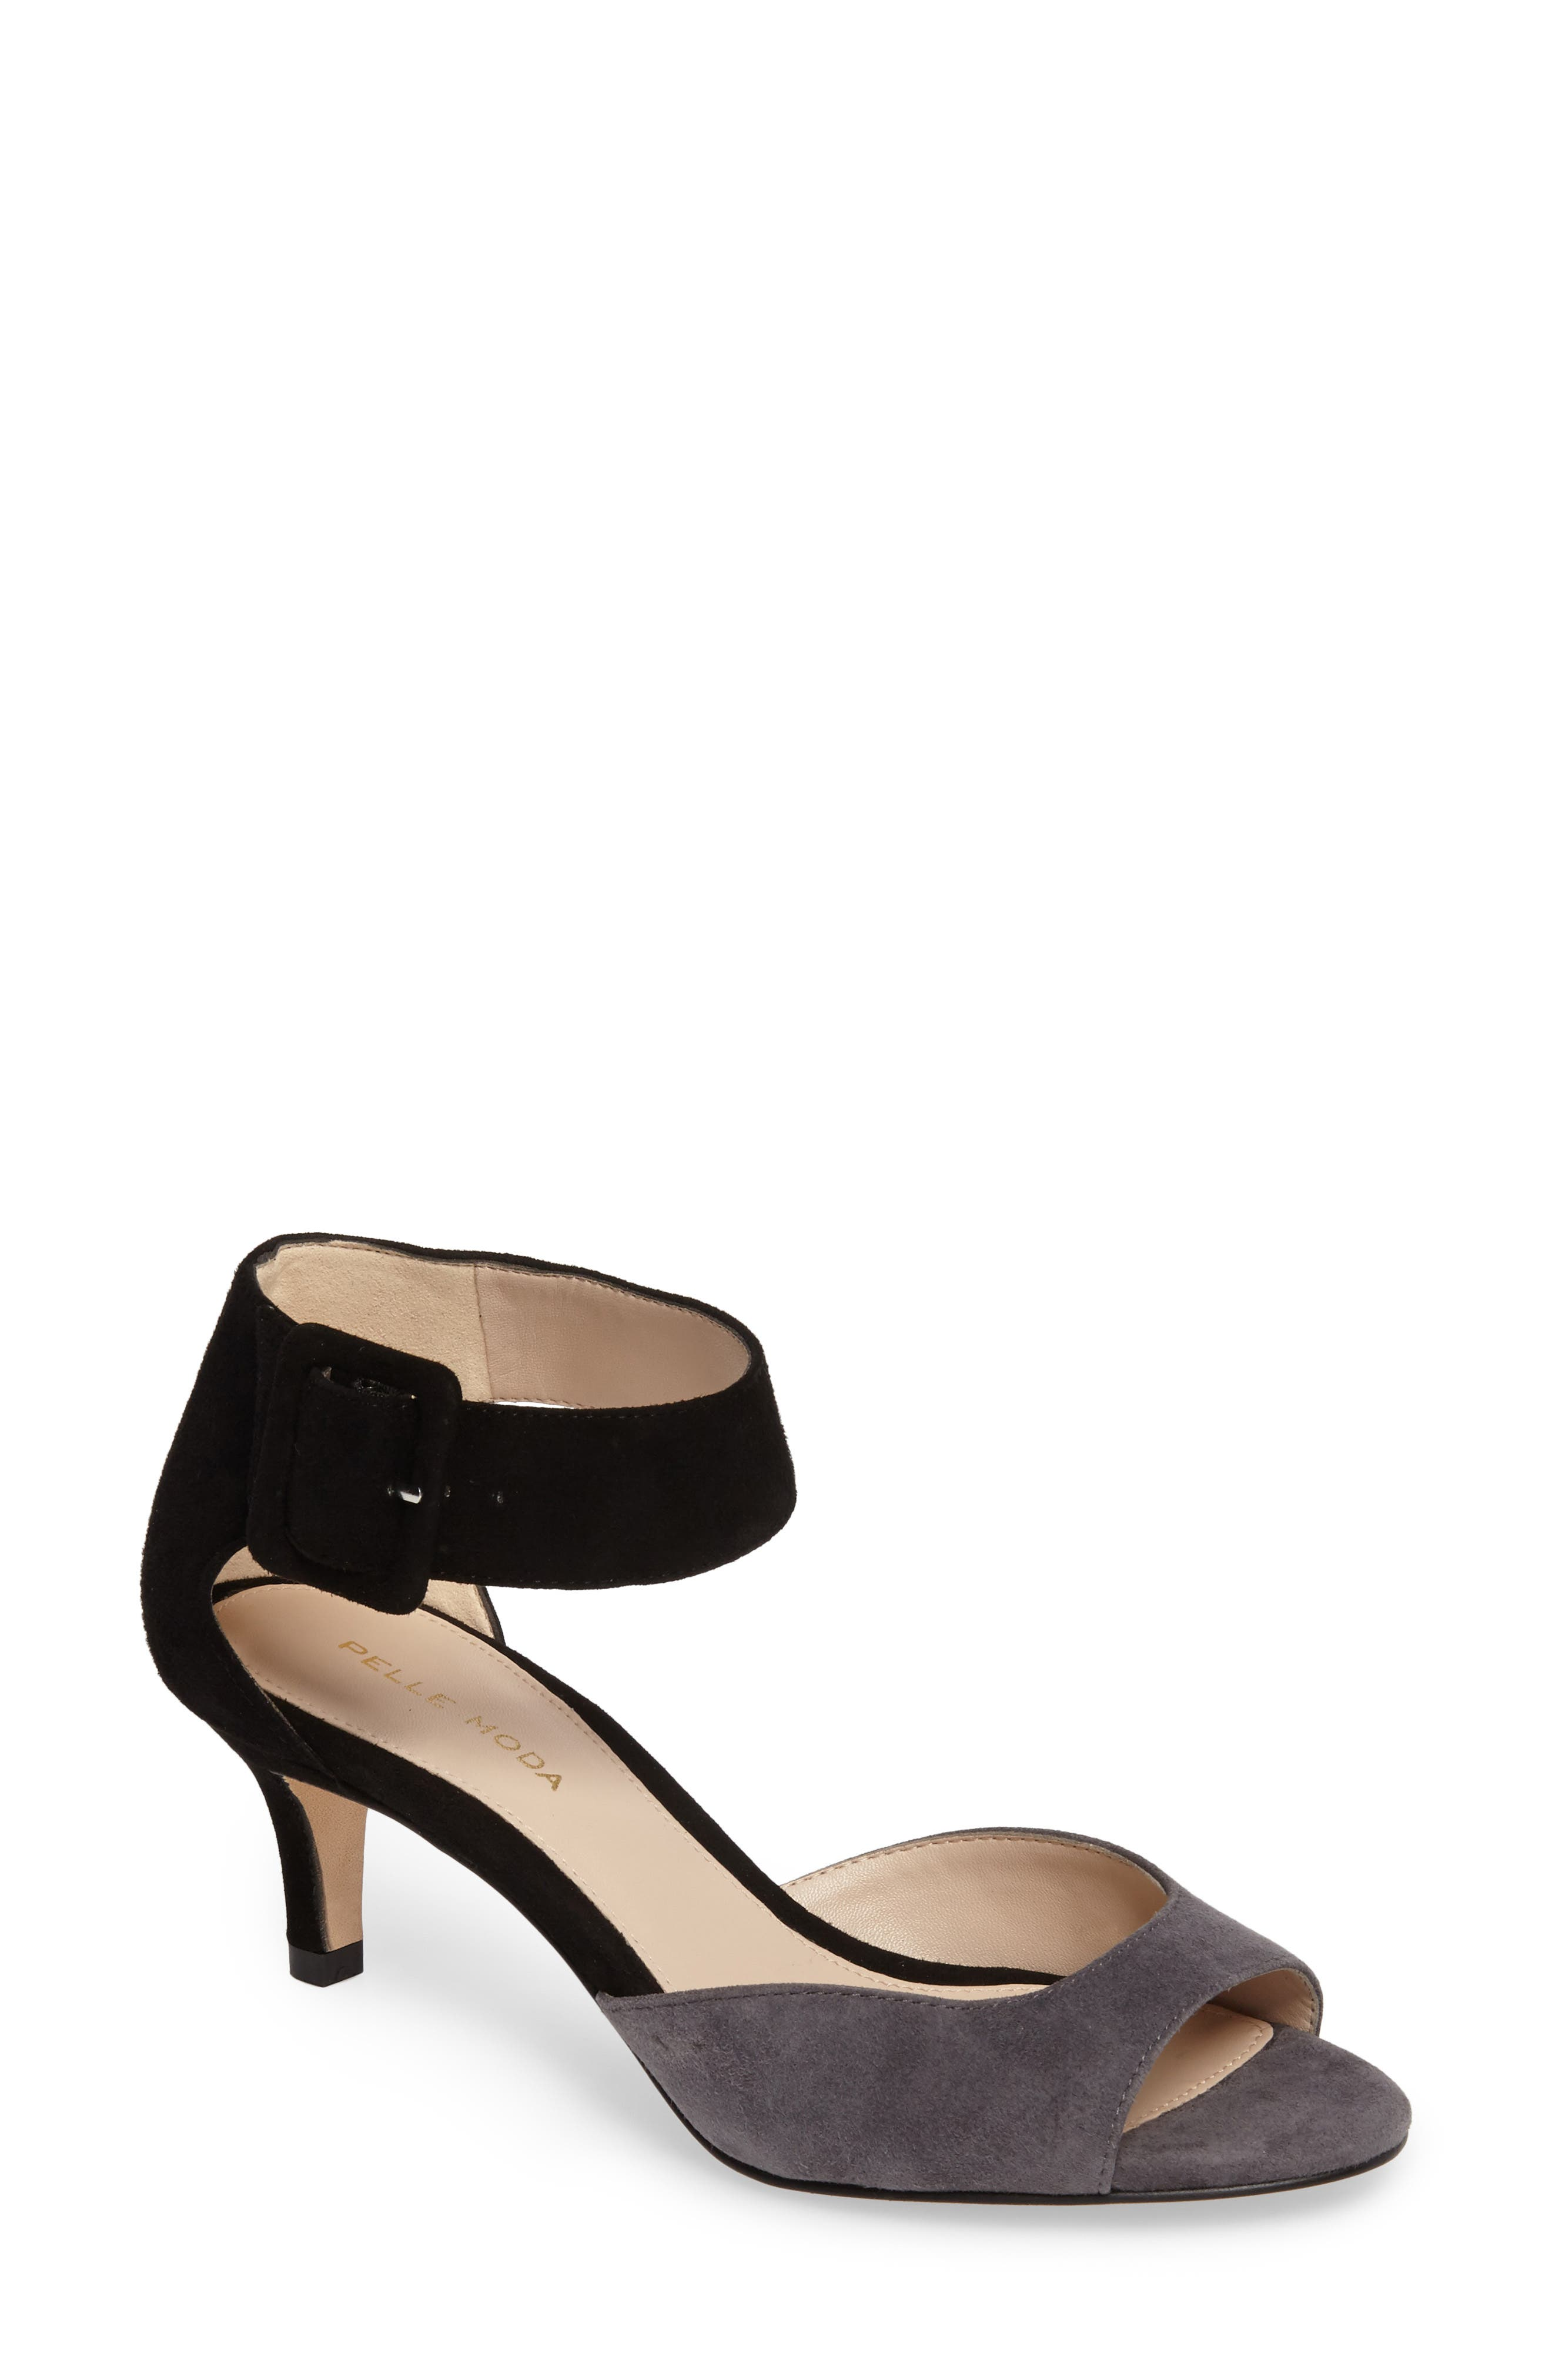 Pelle Moda Shoes Nordstrom